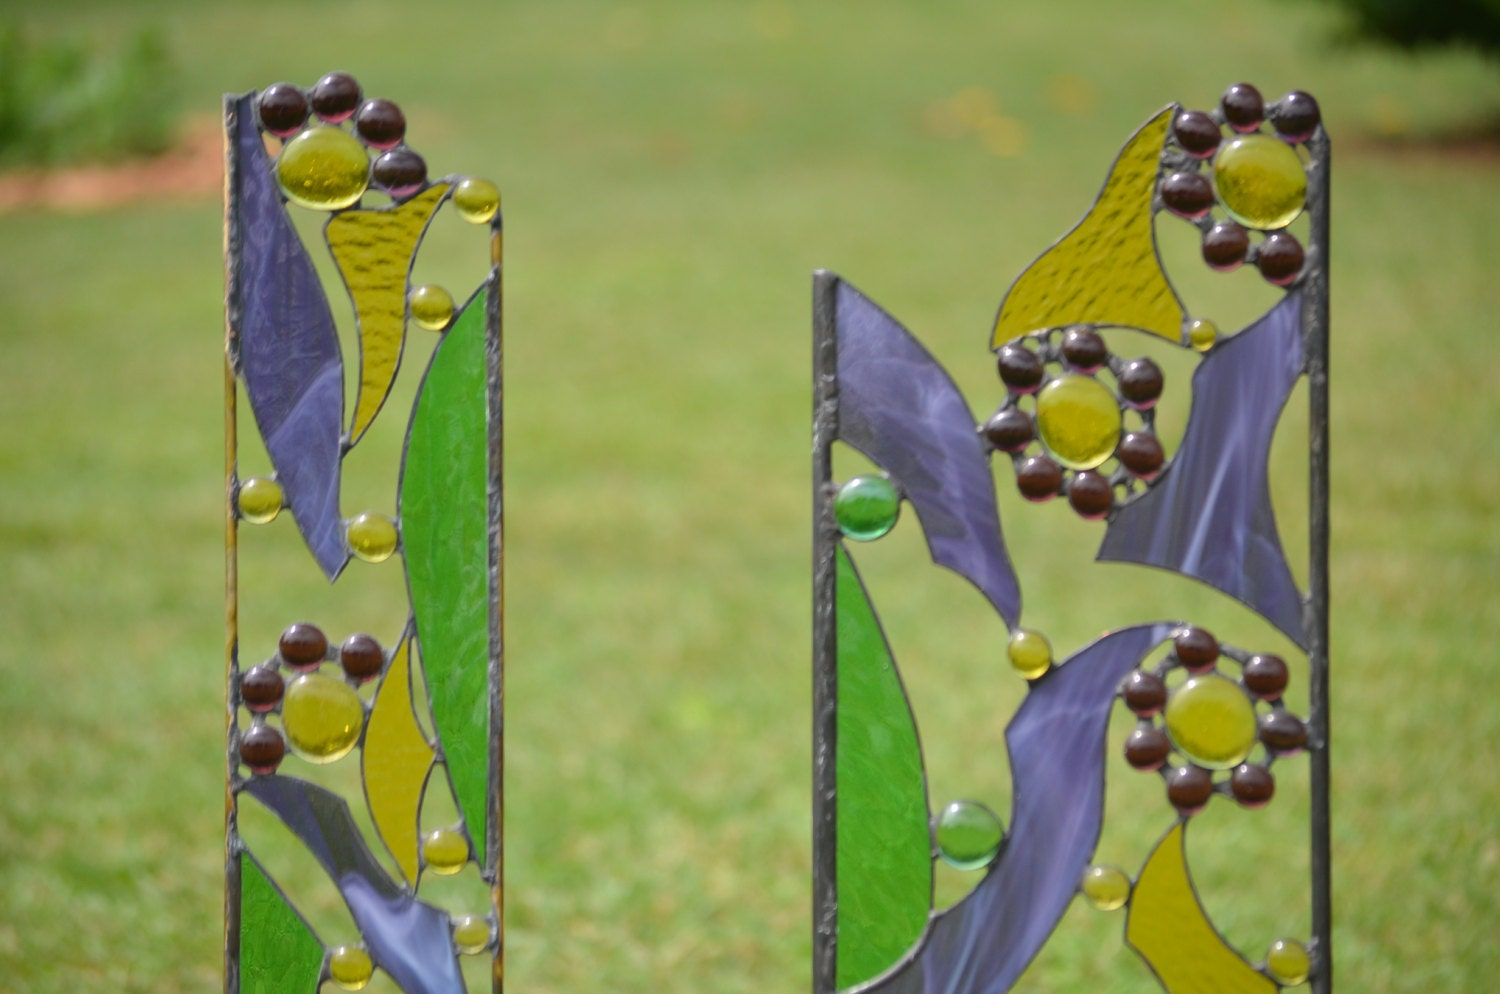 Stained Glass Garden Sculptures Yard Art in Pairs for your